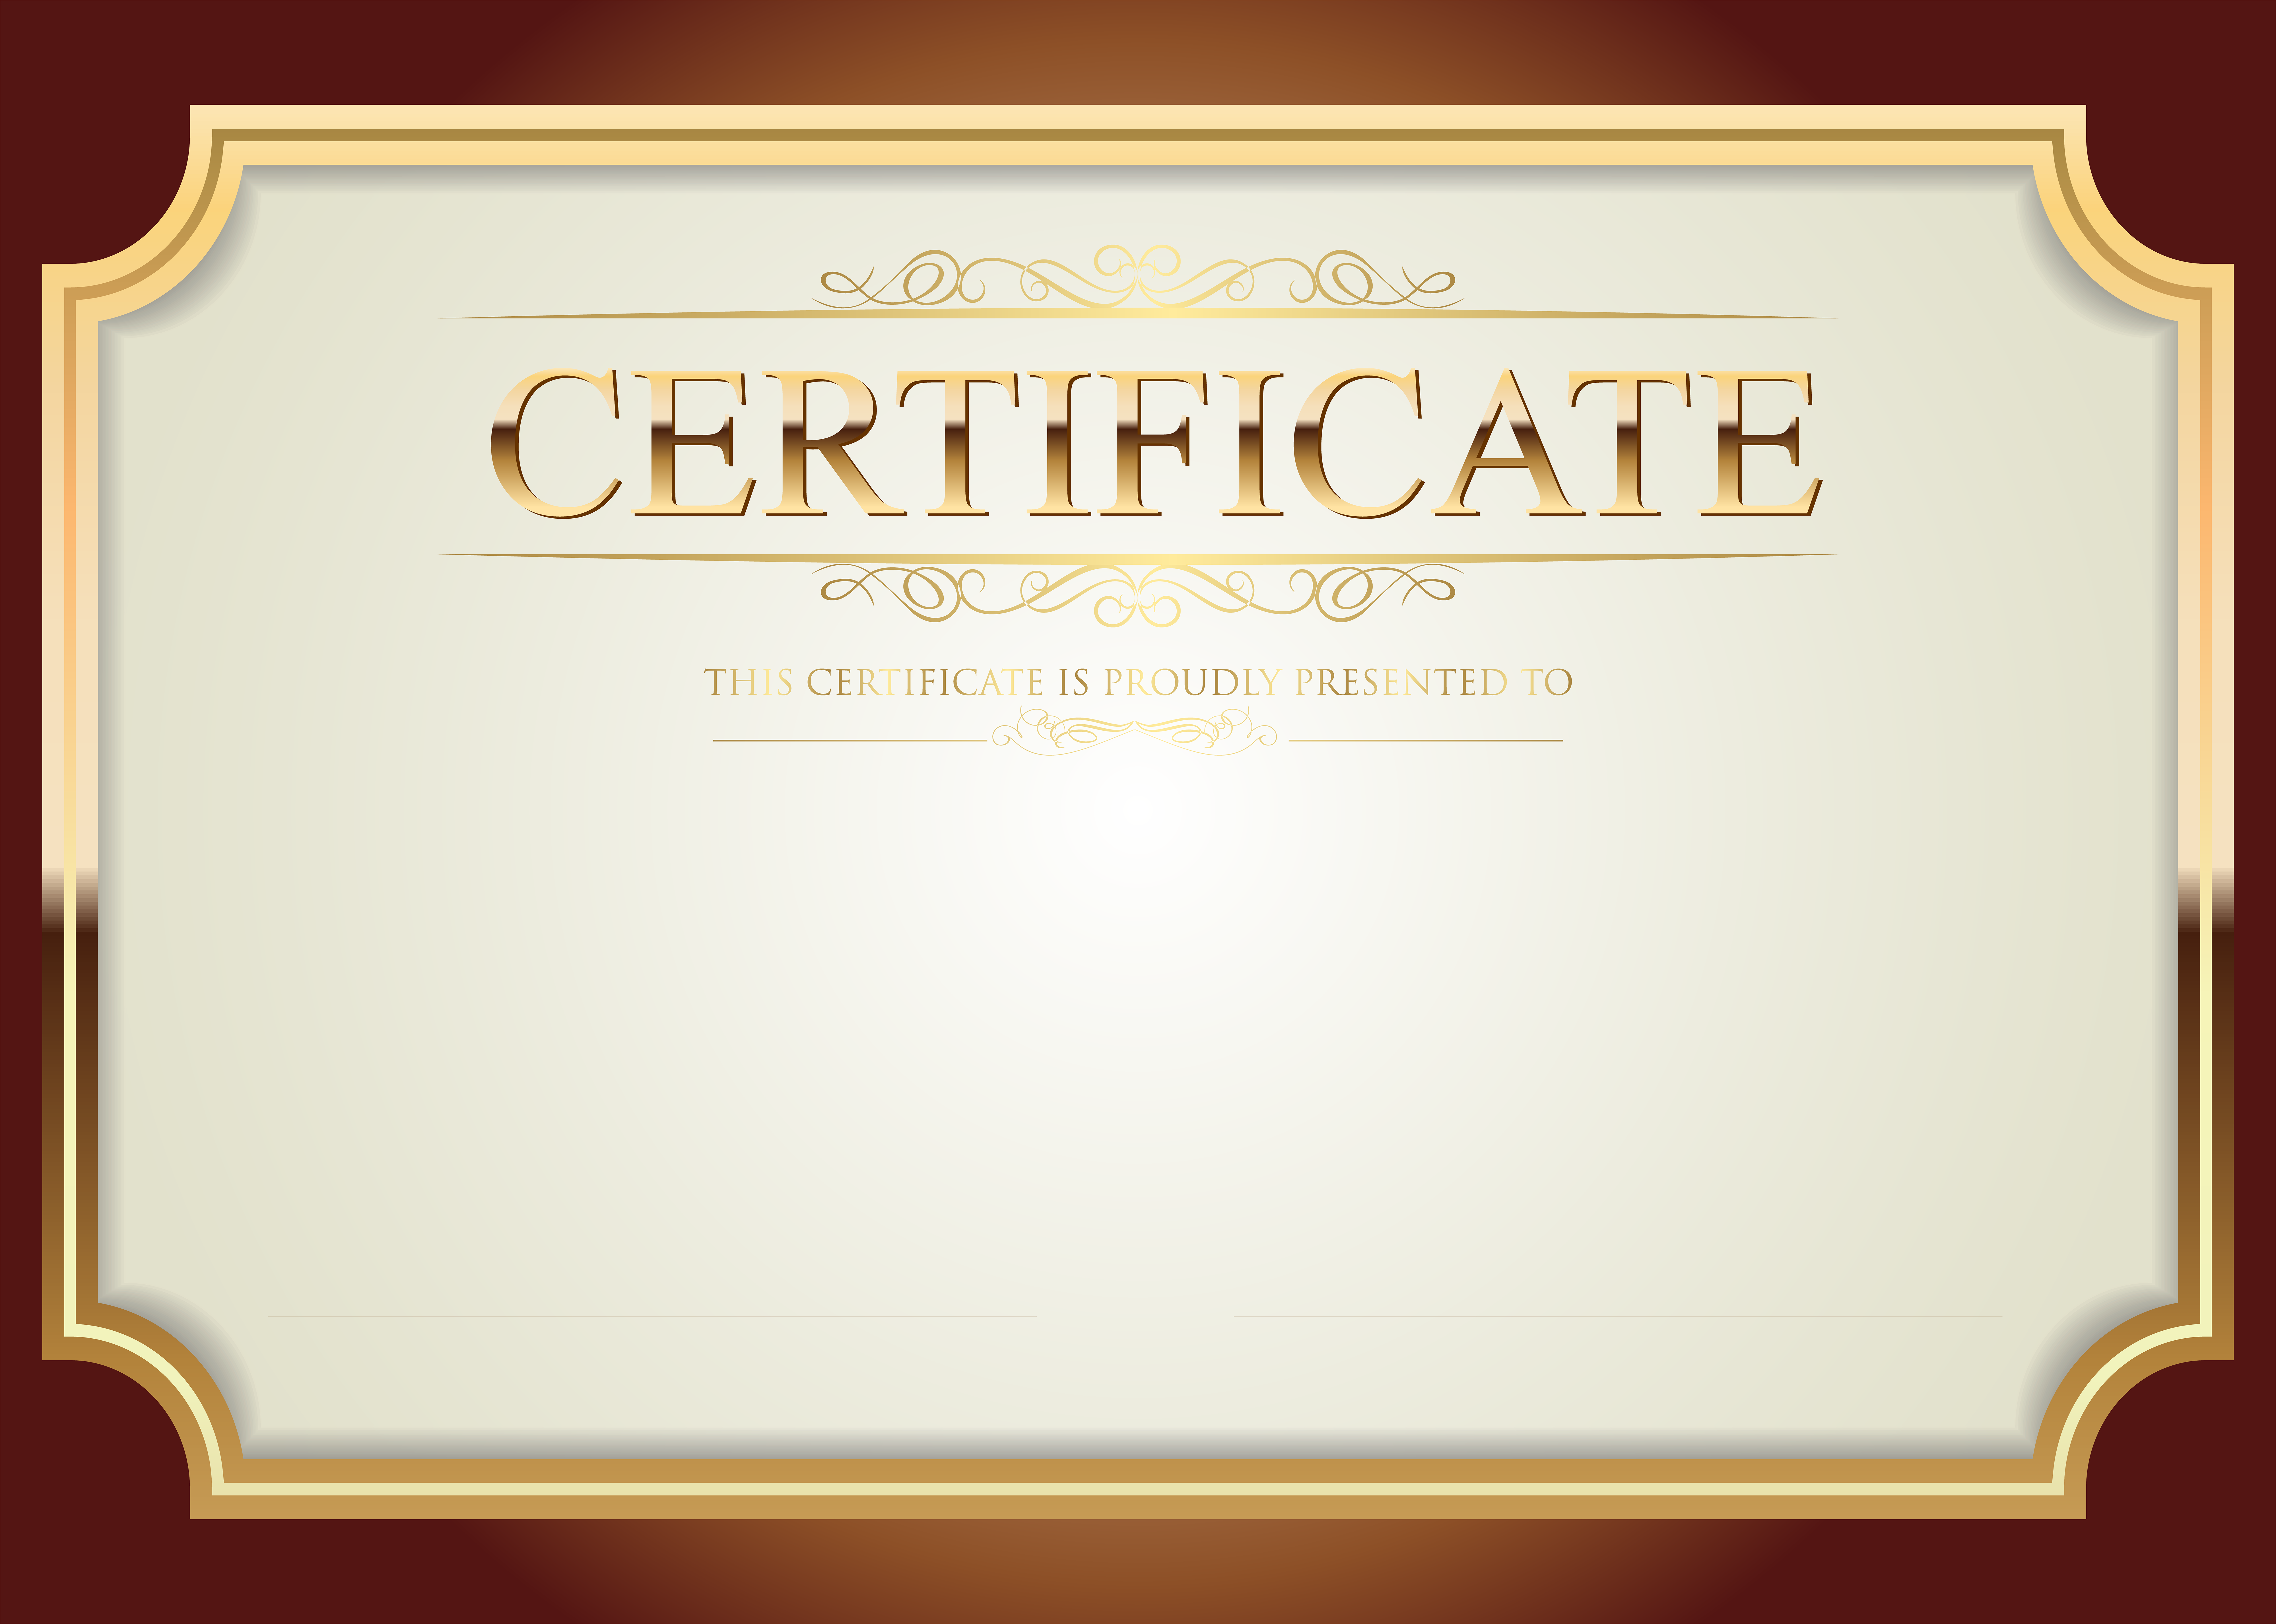 Certificate template png clip art gallery yopriceville high certificate template png clip art gallery yopriceville high quality images and transparent xflitez Images